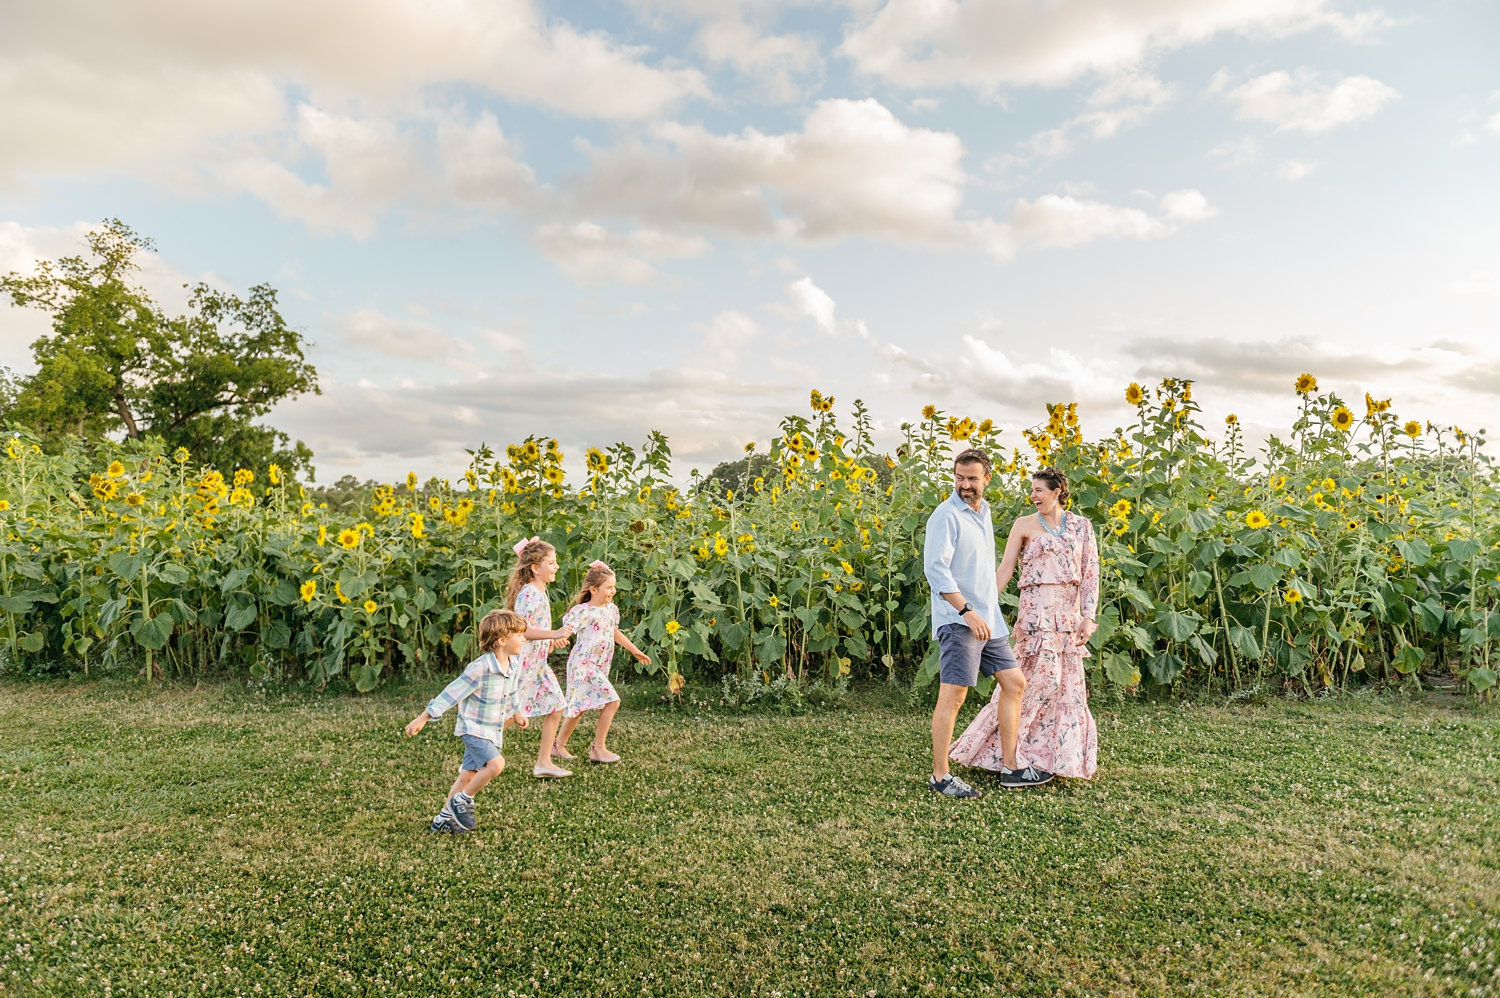 family and sunflower field, golden hour photography, golden hour family photography, Rya Duncklee Portraits